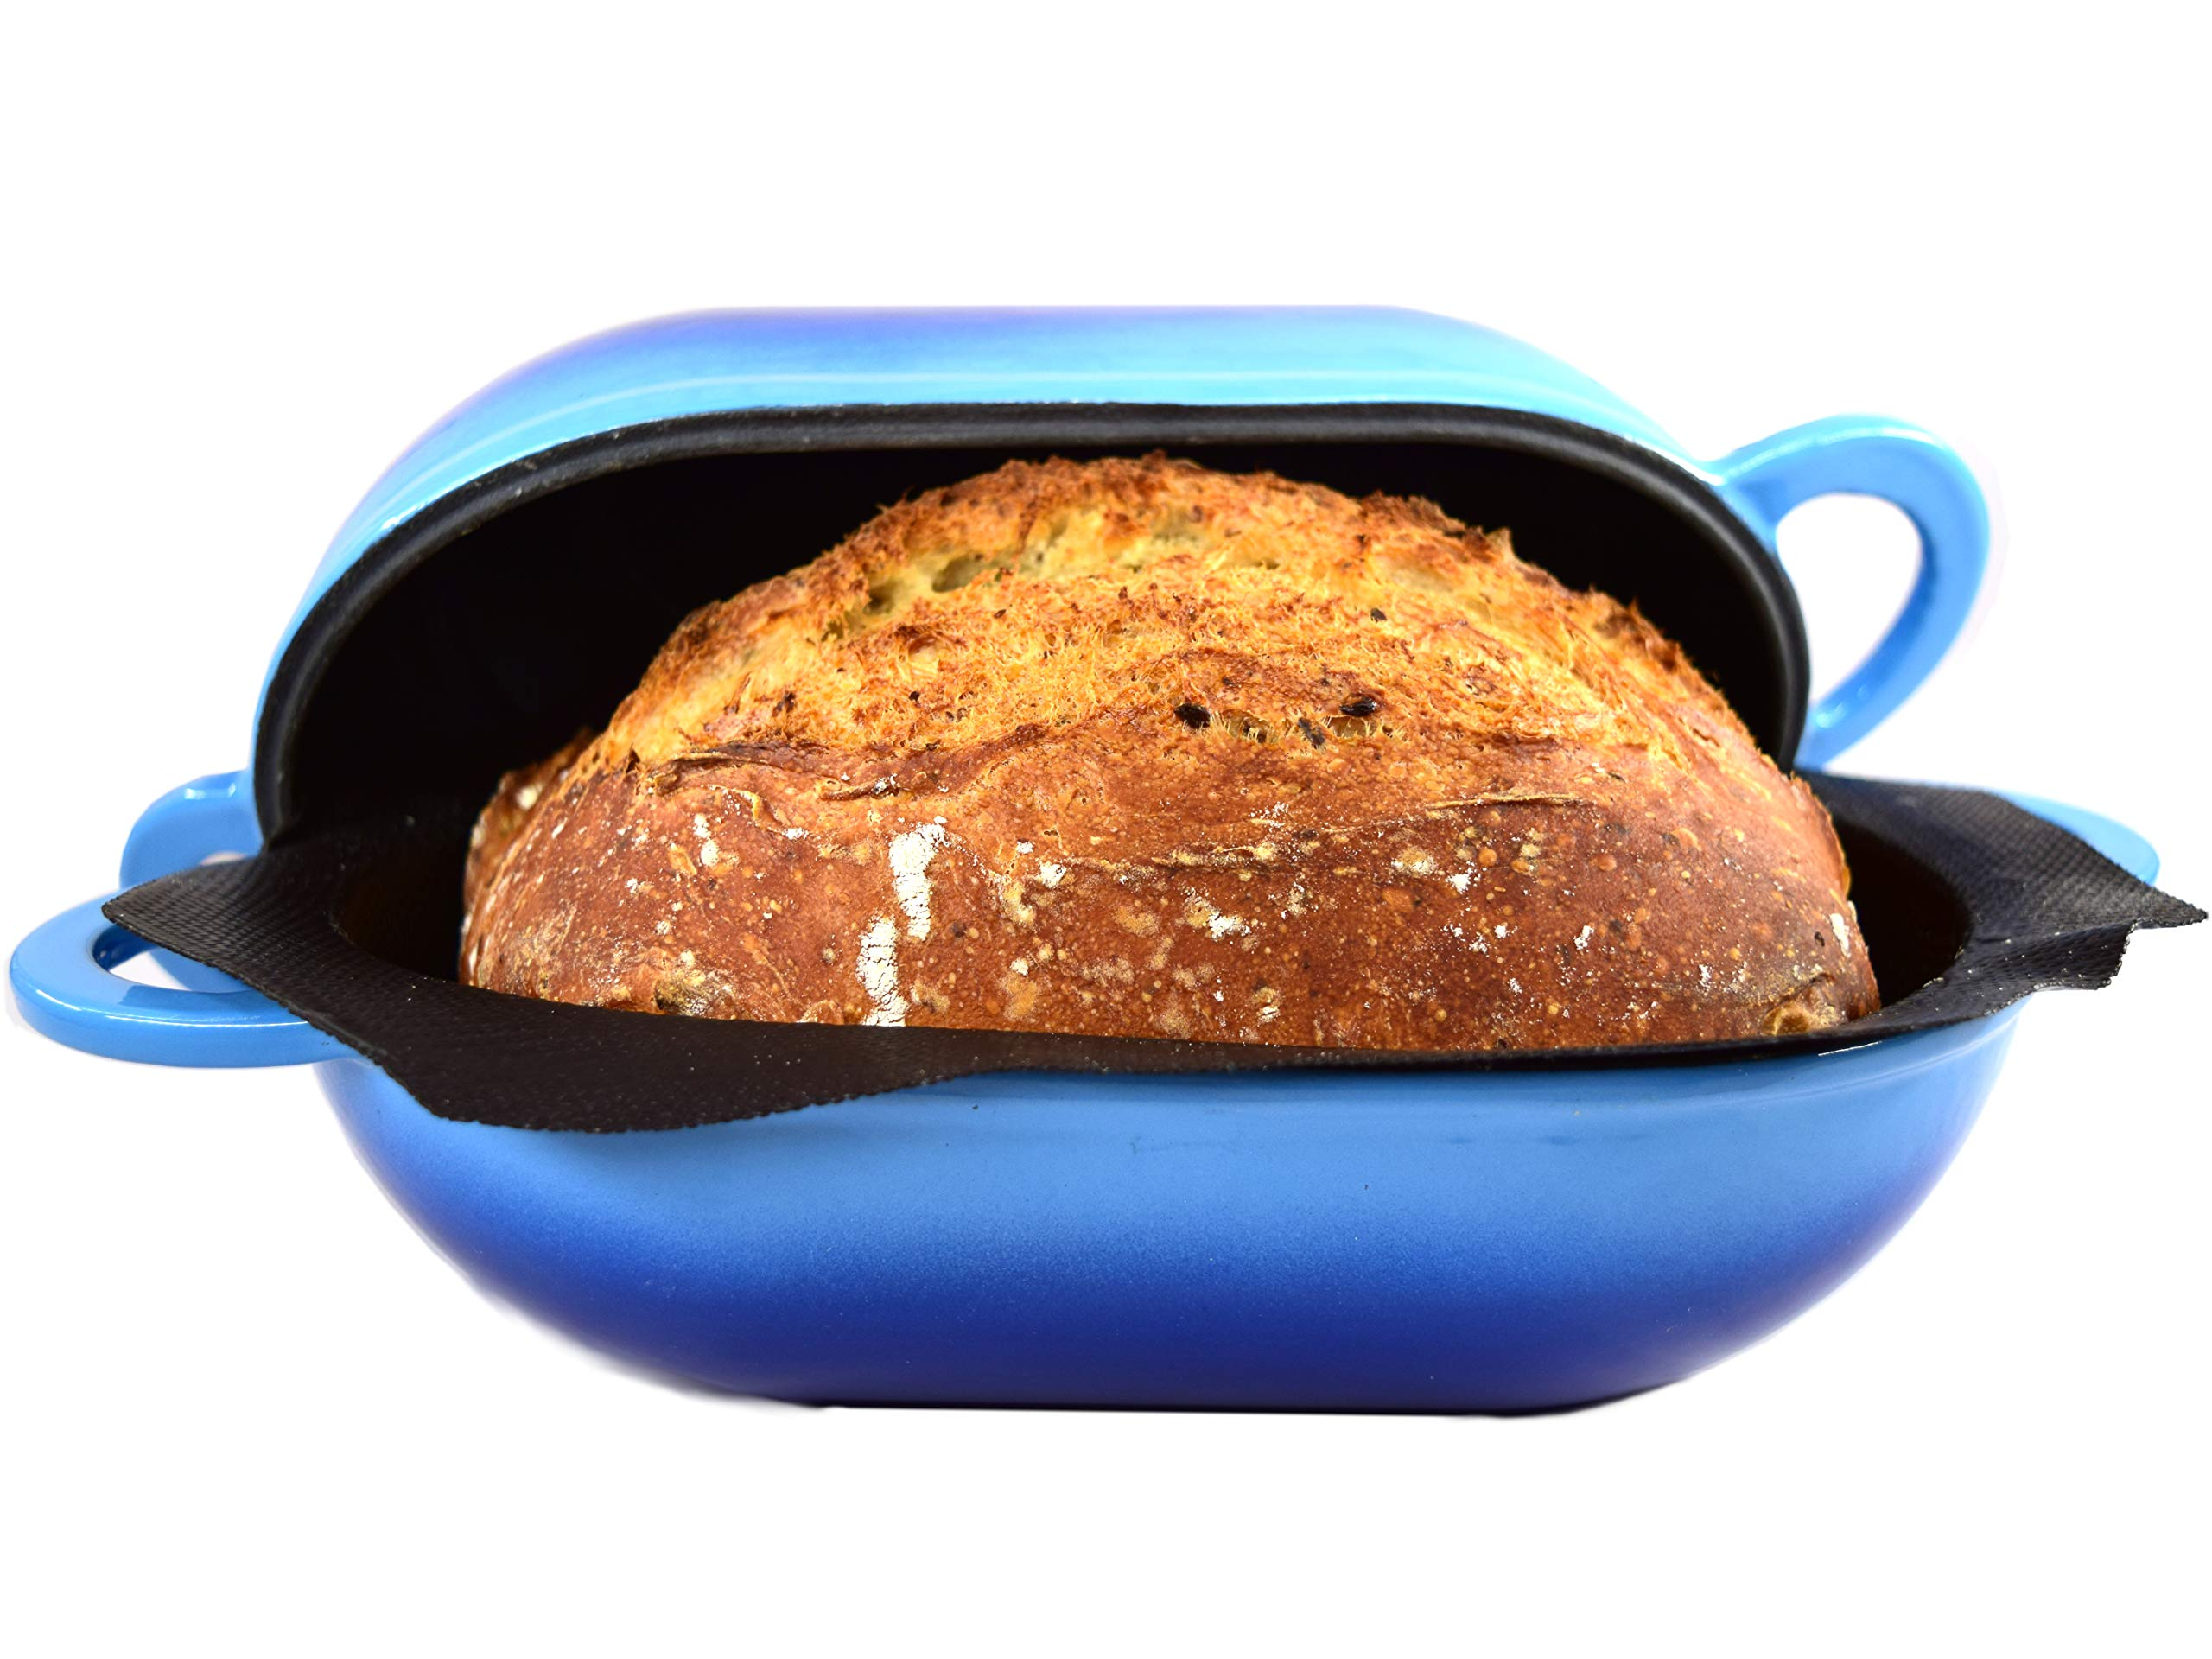 LoafNest: Incredibly Easy Artisan Bread Kit. Cast Iron Dutch Oven and Non-Stick Perforated Silicone Liner [Blue Gradient]. by LoafNest